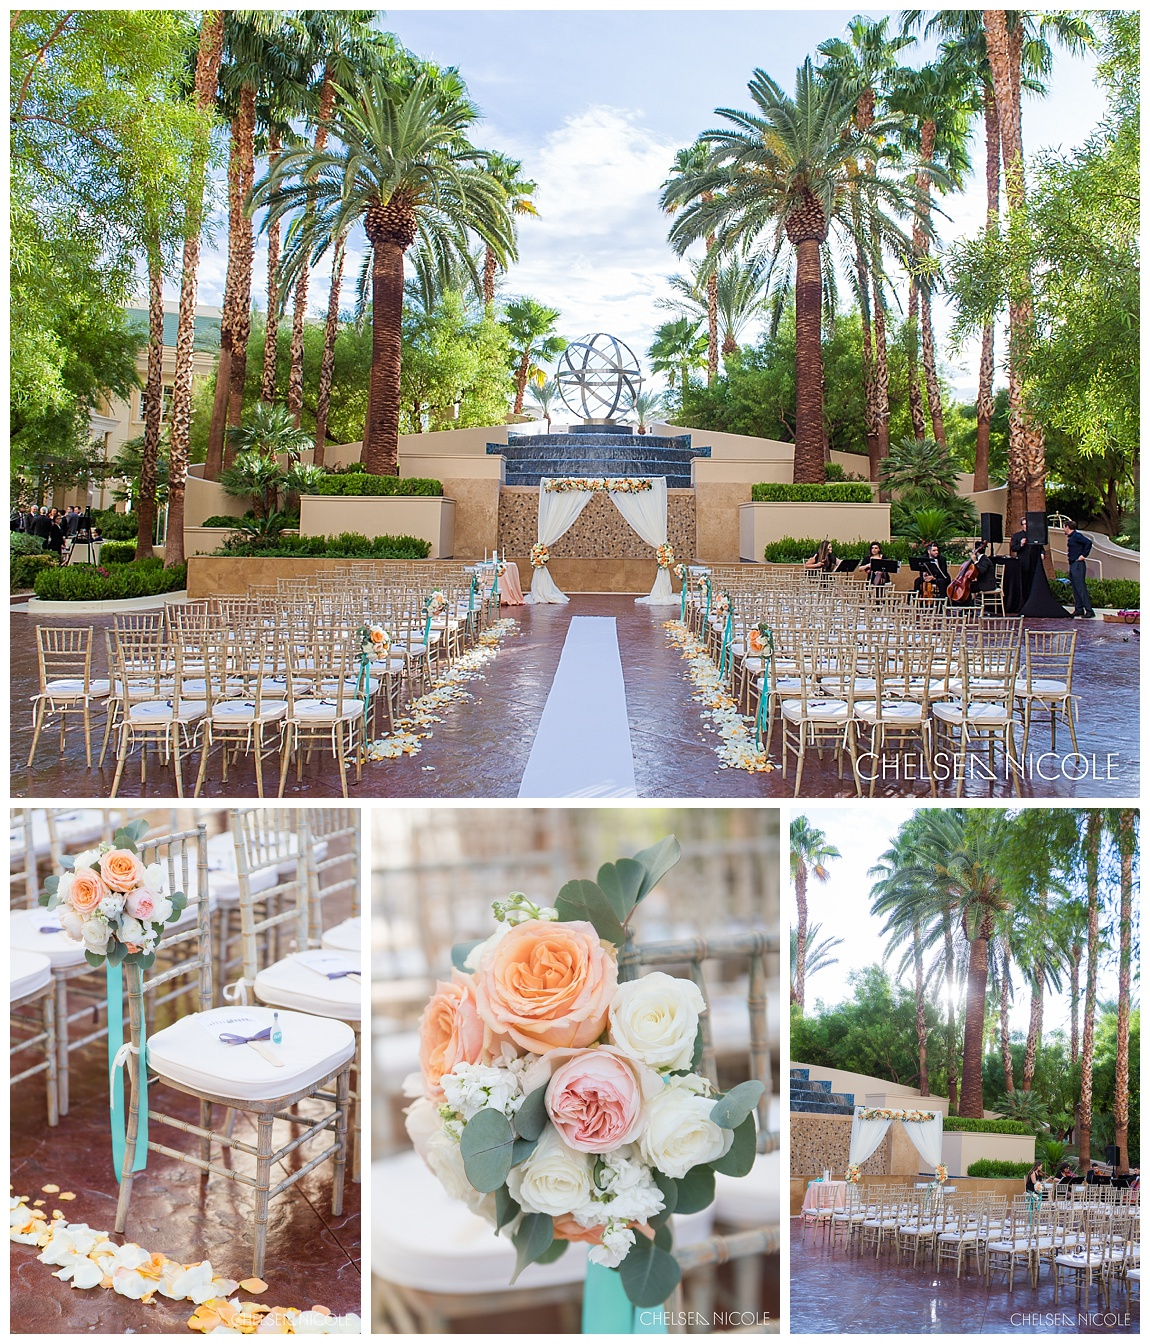 Four Seasons Las Vegas Wedding: Joni & Erick